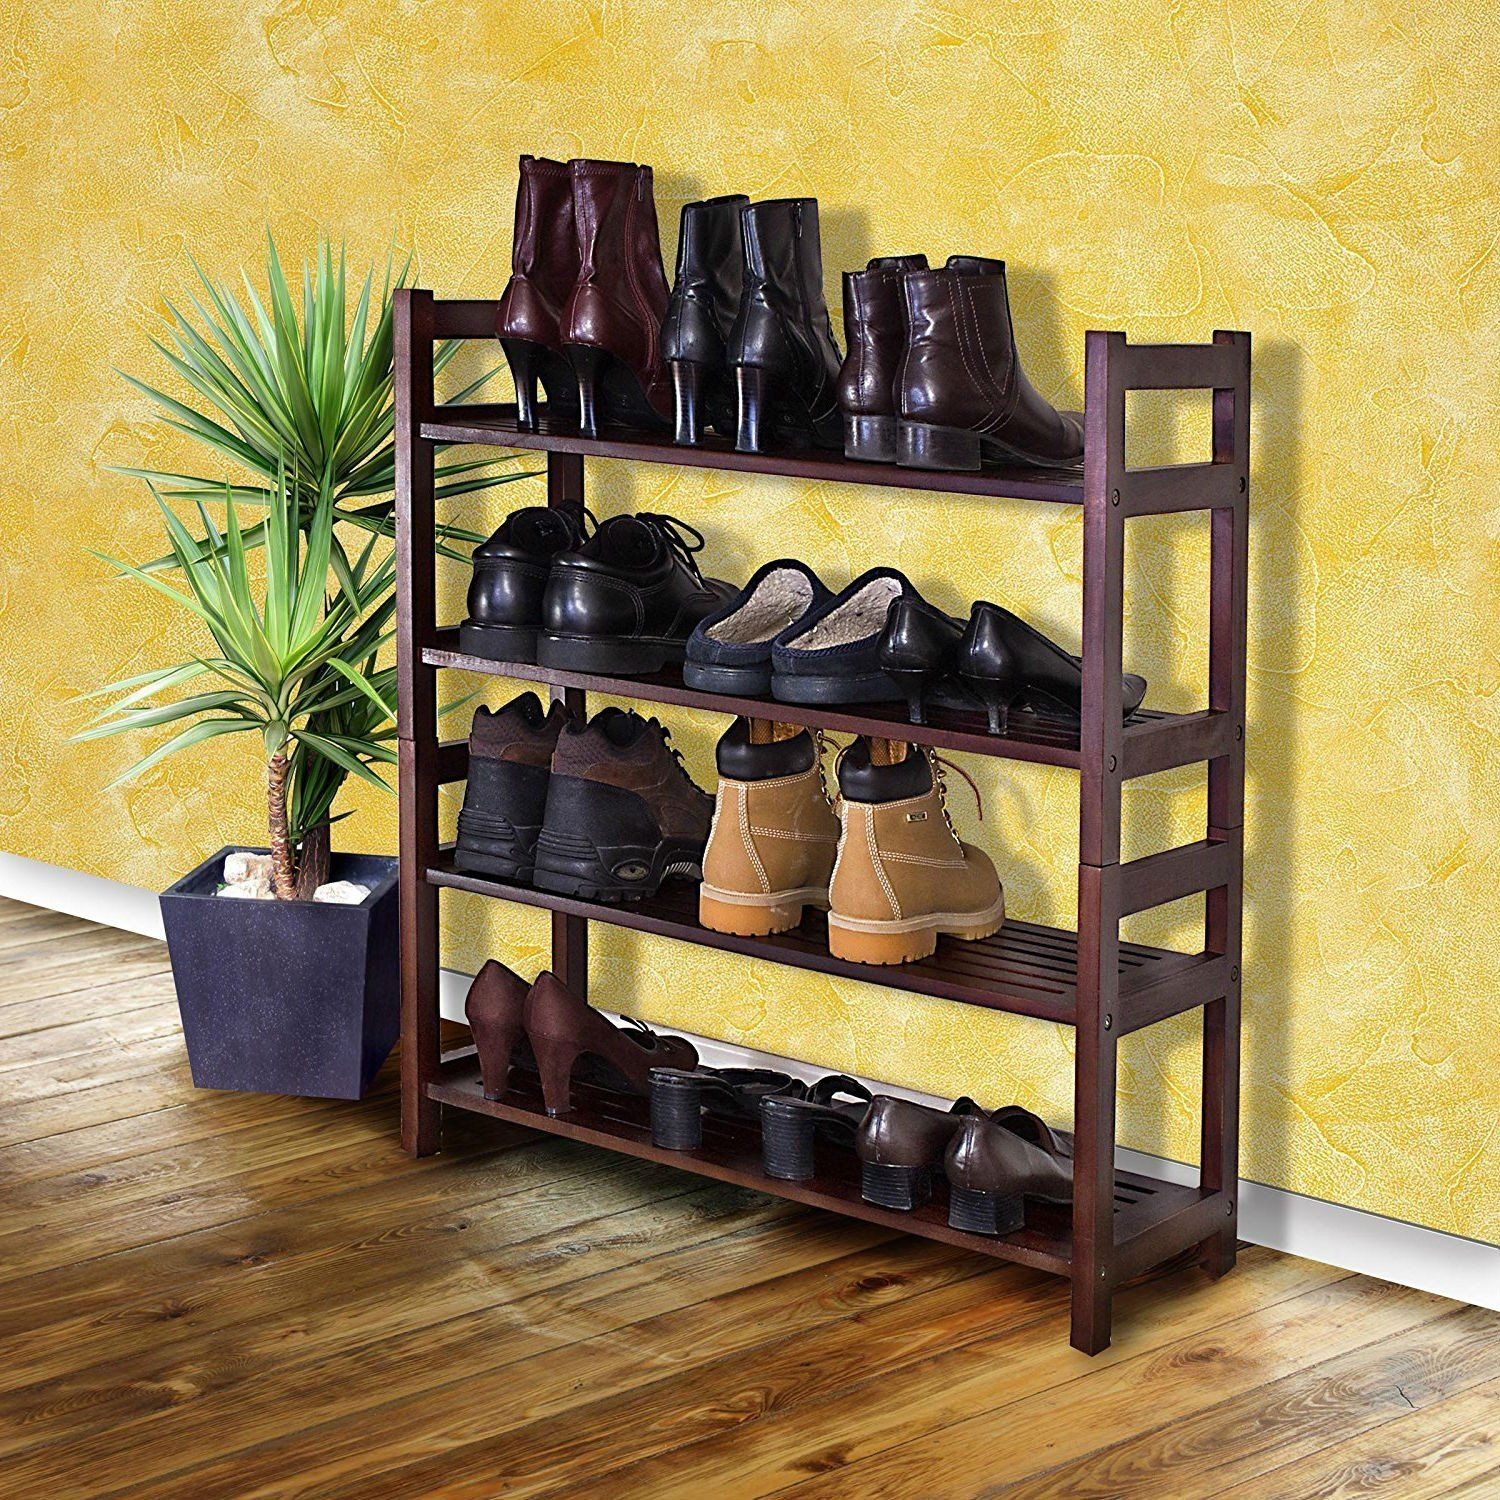 Shoe Storage Rack Wood Closet Organizer Shoes Space Saving .